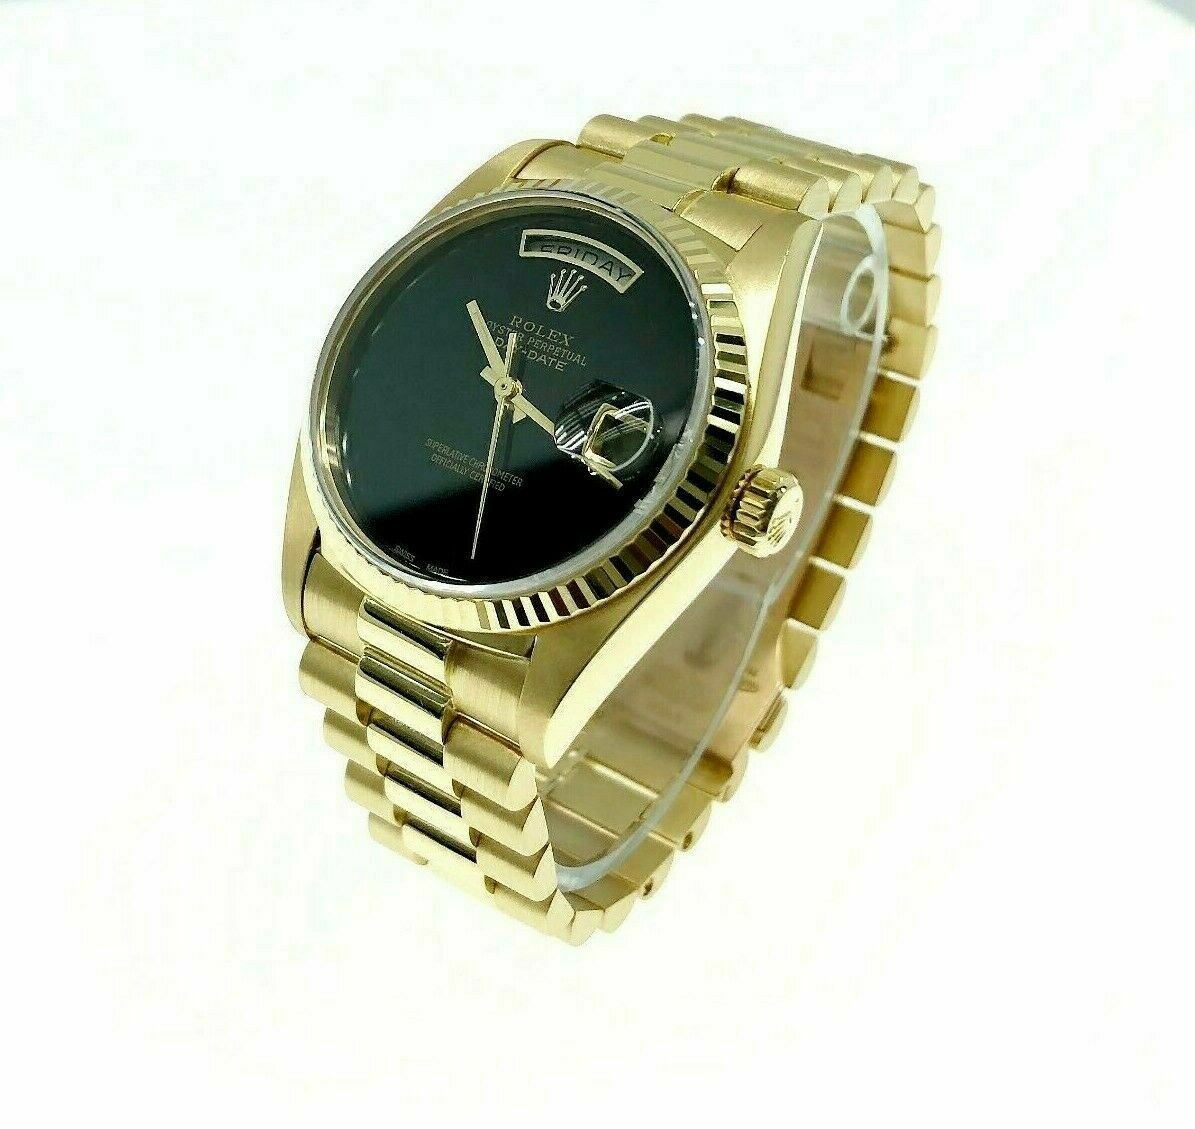 Rolex Day Date 18K President 36mm Watch 18038 Vintage 1980's with Onyx Dial